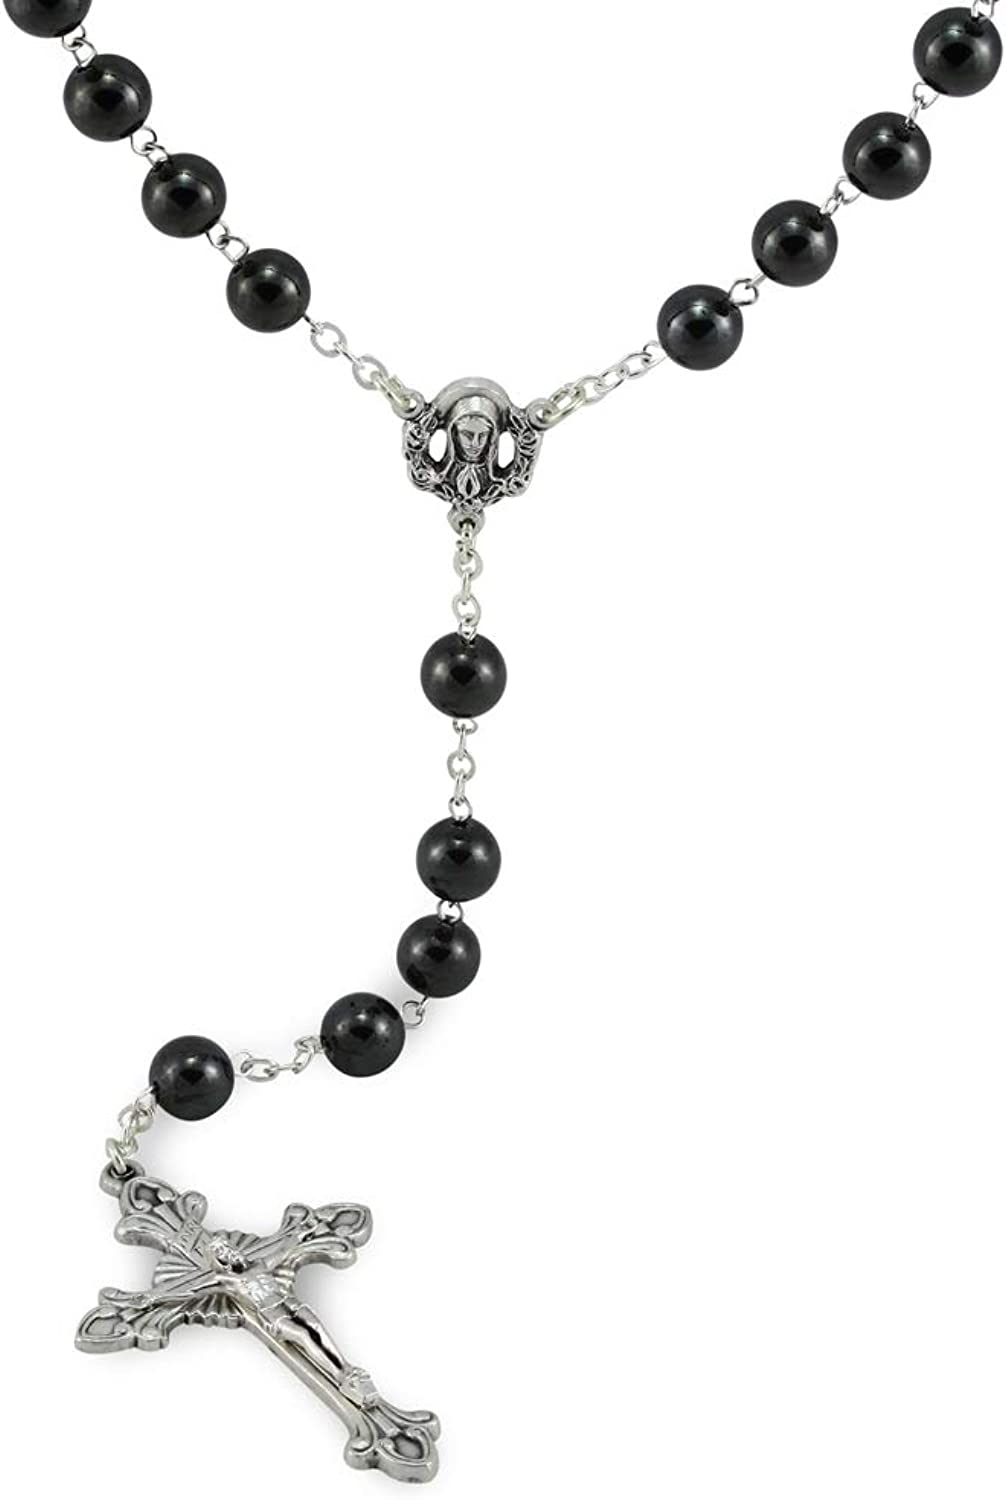 Hematite Beads pinkry with Sacred Heart of Mary Center